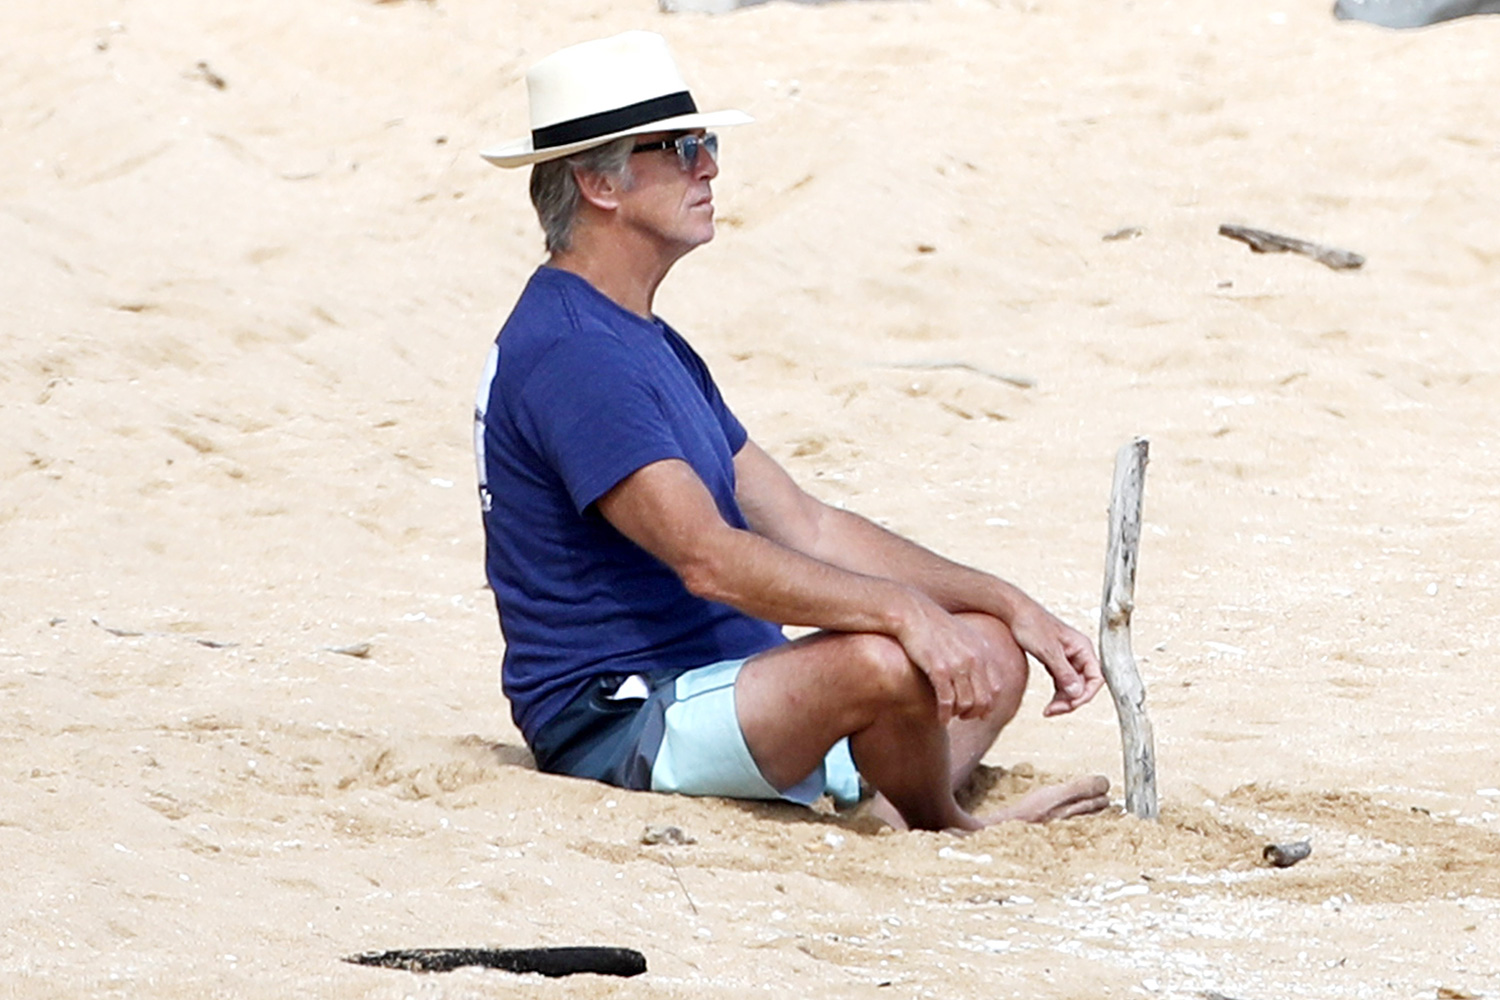 Pierce Brosnan takes a moment to meditate on the beach in Hawaii